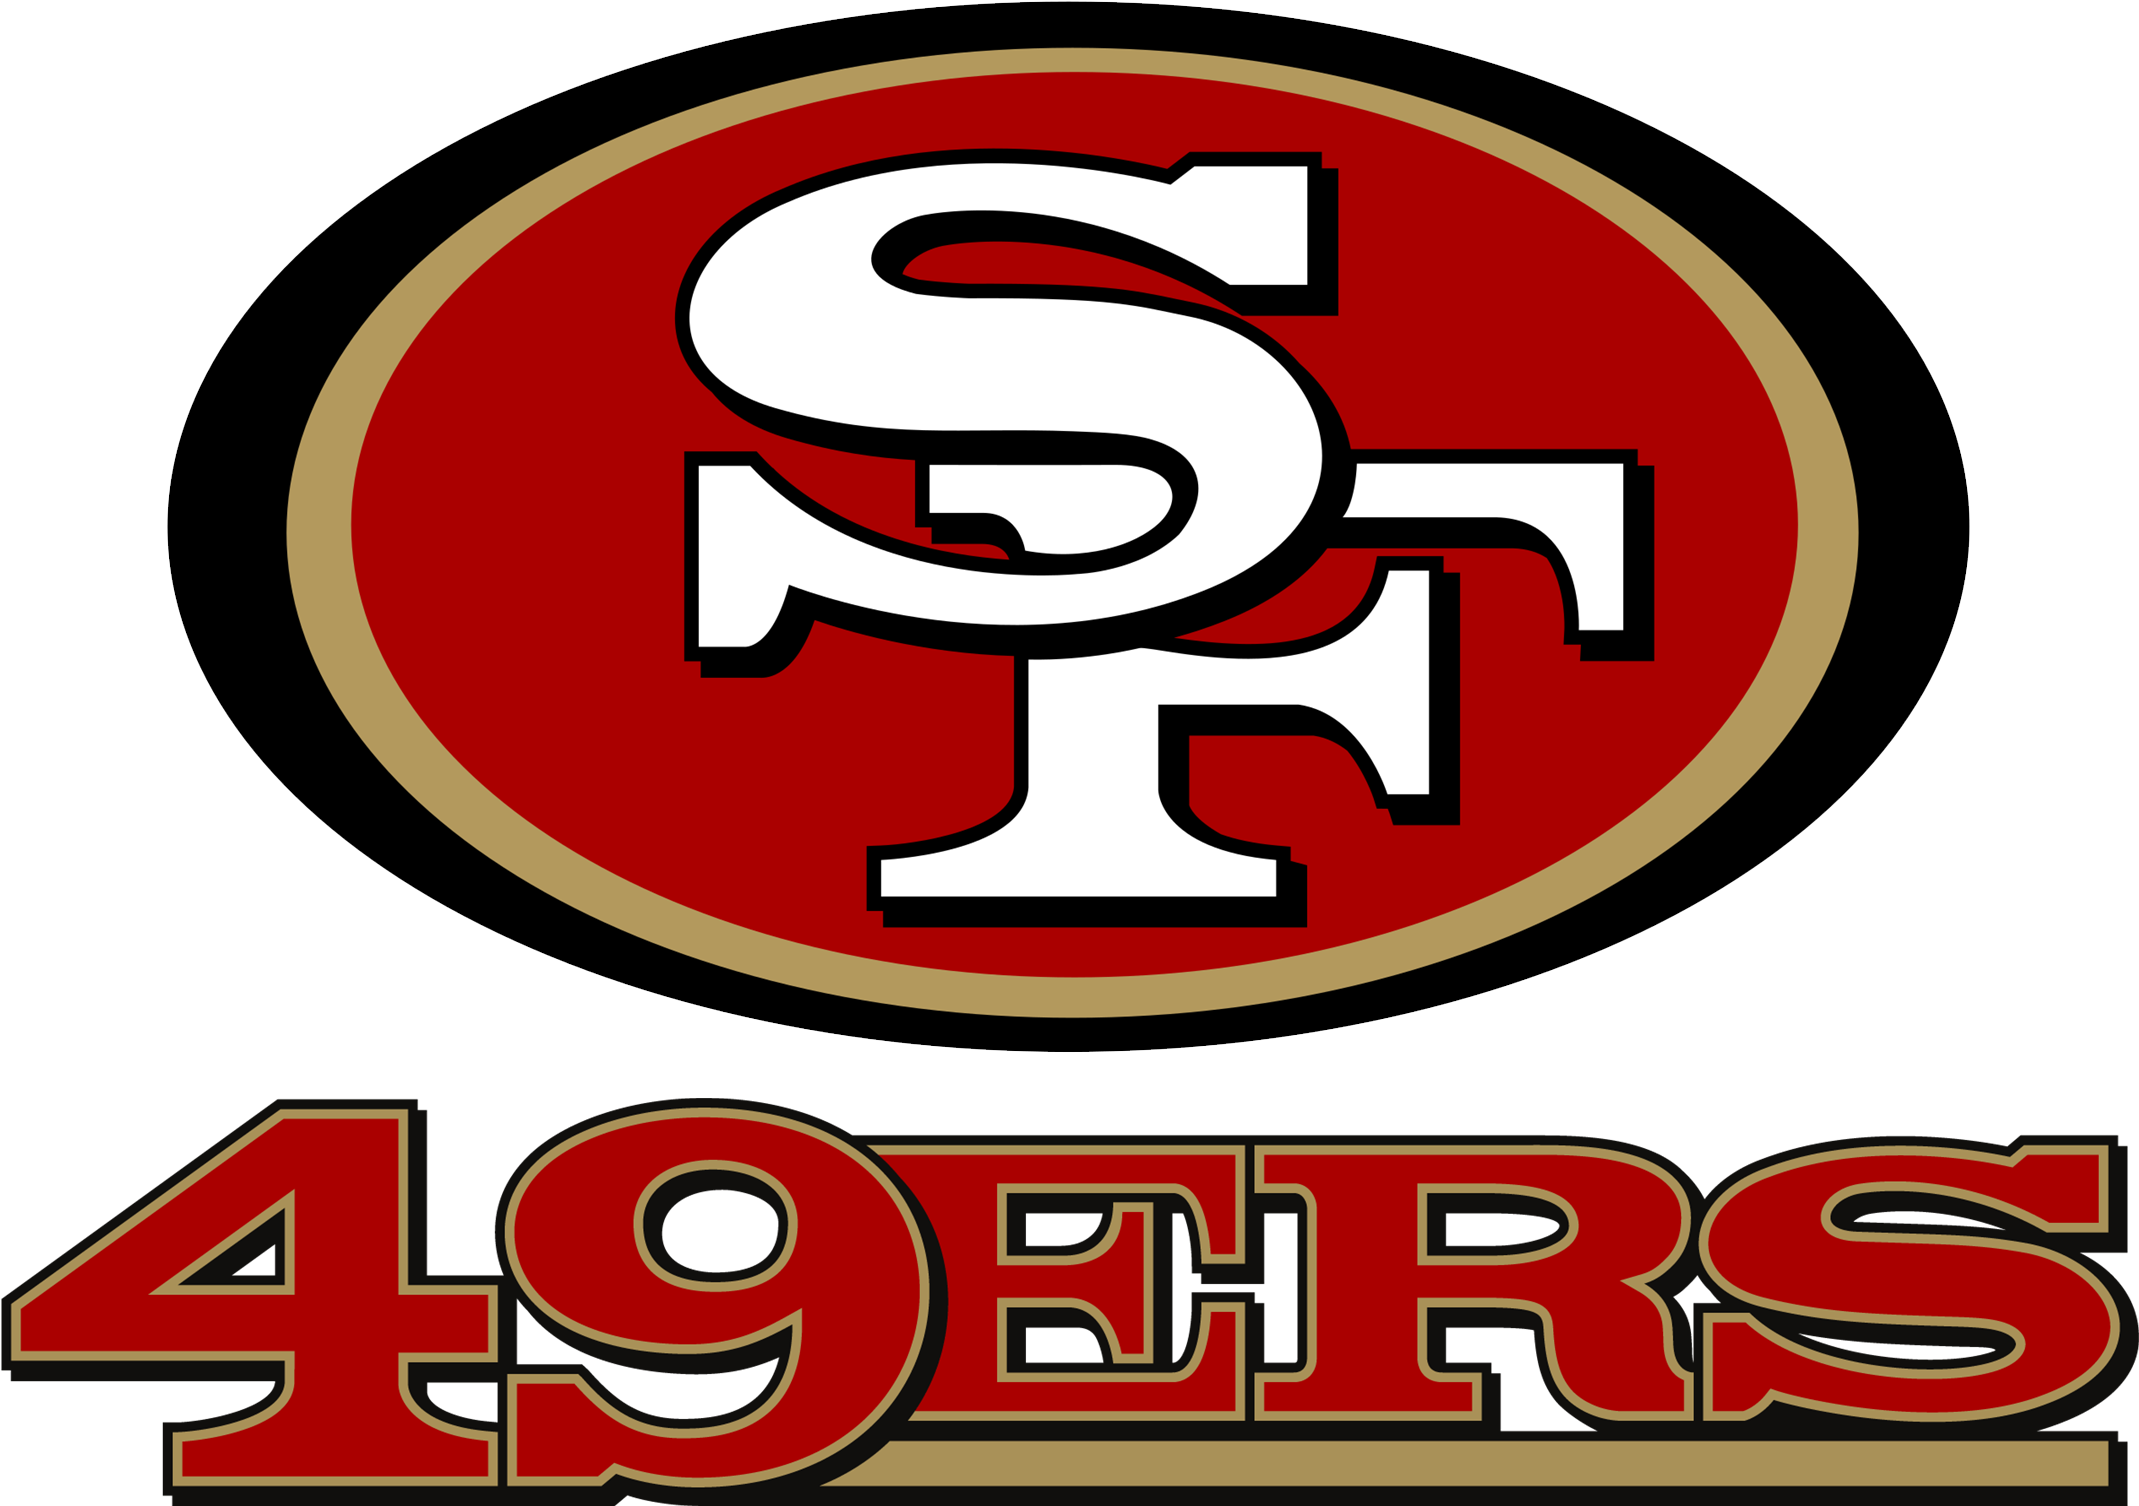 San Francisco 49ers Logo Png Transparent Svg Vector.